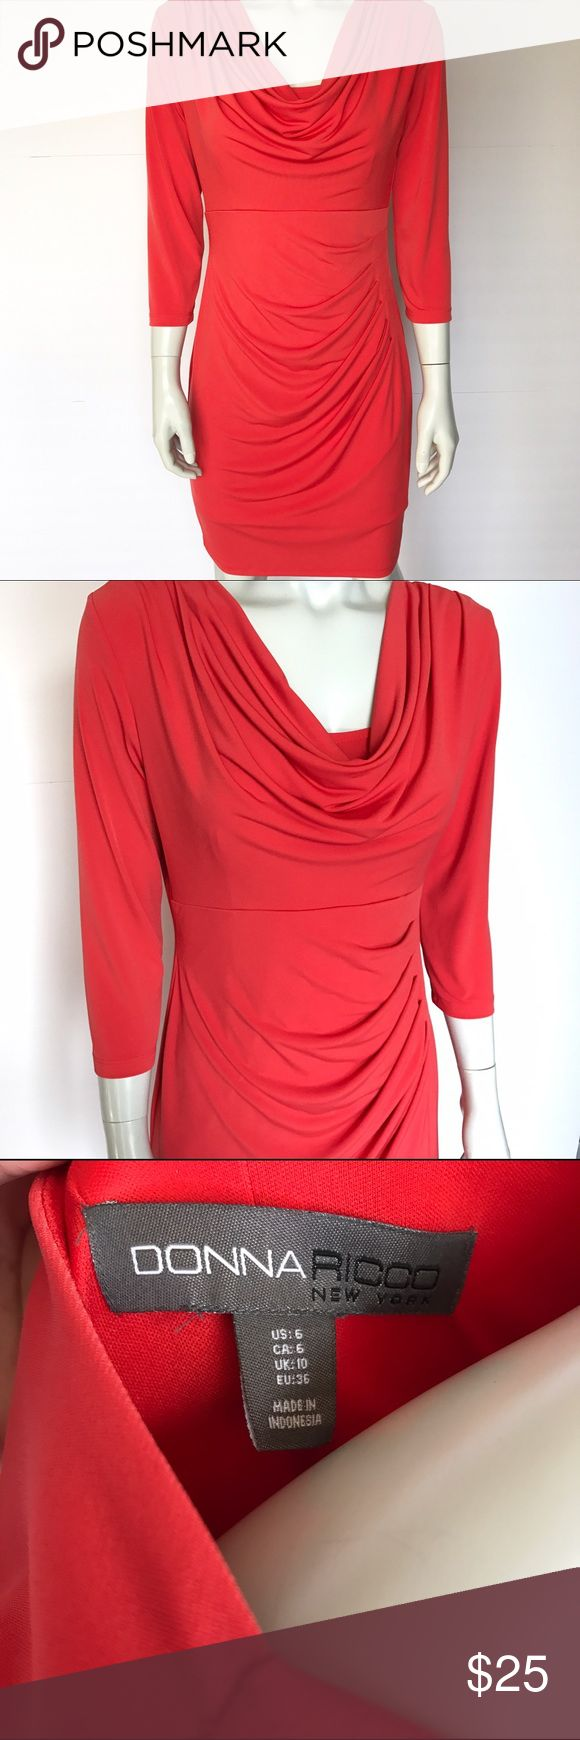 Donna Rocco orange cowl neck dress This beautiful, stretchy orange dress has a cowl neck. Rushing to one side for a flattering look. So soft, comfortable, and elegant! Can be dressed up or down. Three quarter length sleeves. Gorgeous, versatile dress! Donna Ricco Dresses Long Sleeve